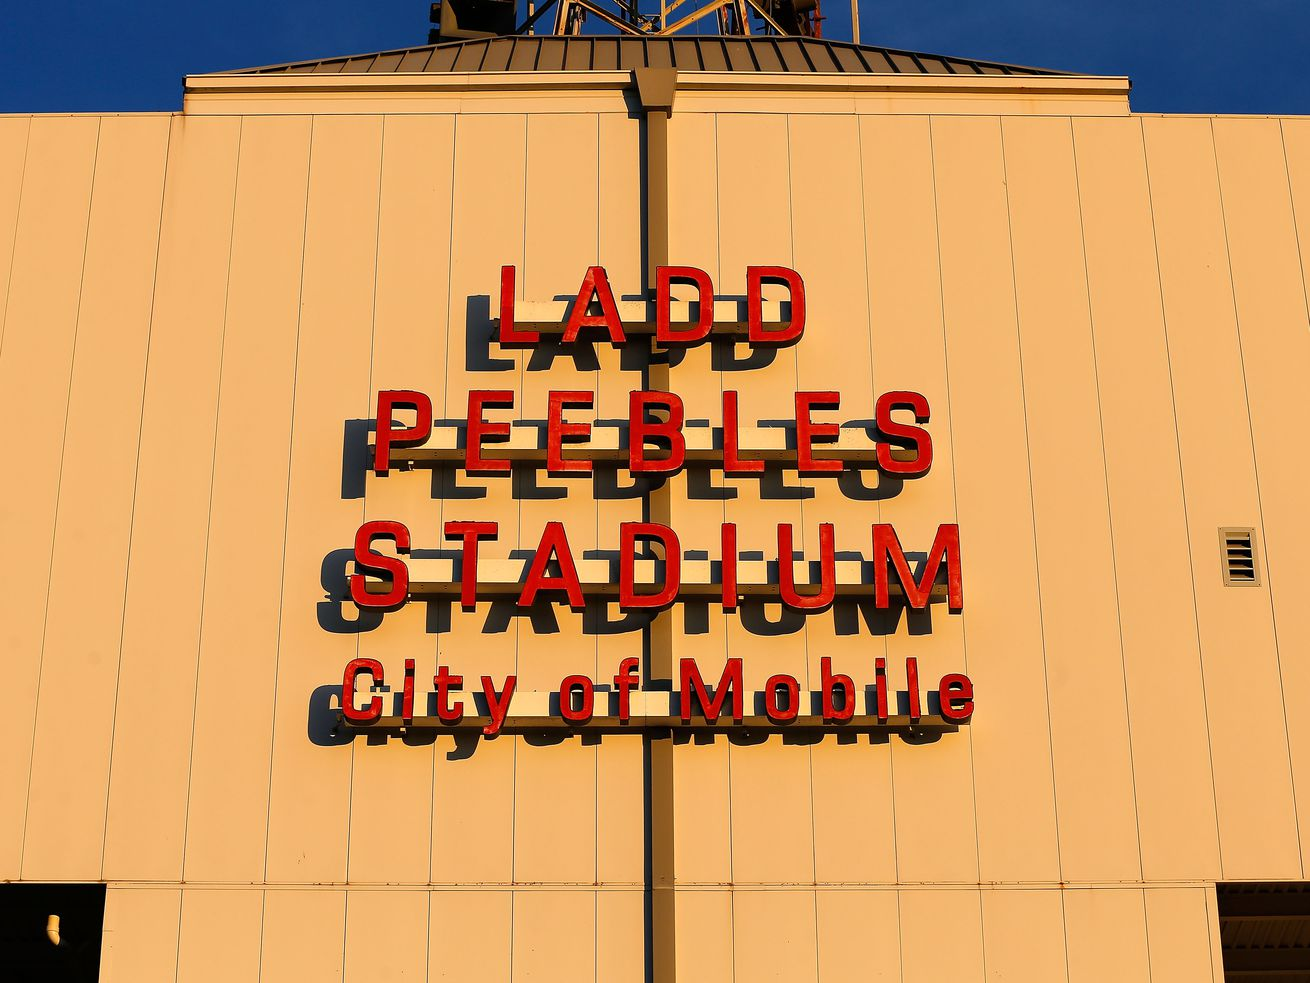 """""""Ladd Peebles Stadium, City of Mobile"""" is spelled out in red letters on the side of the arena."""